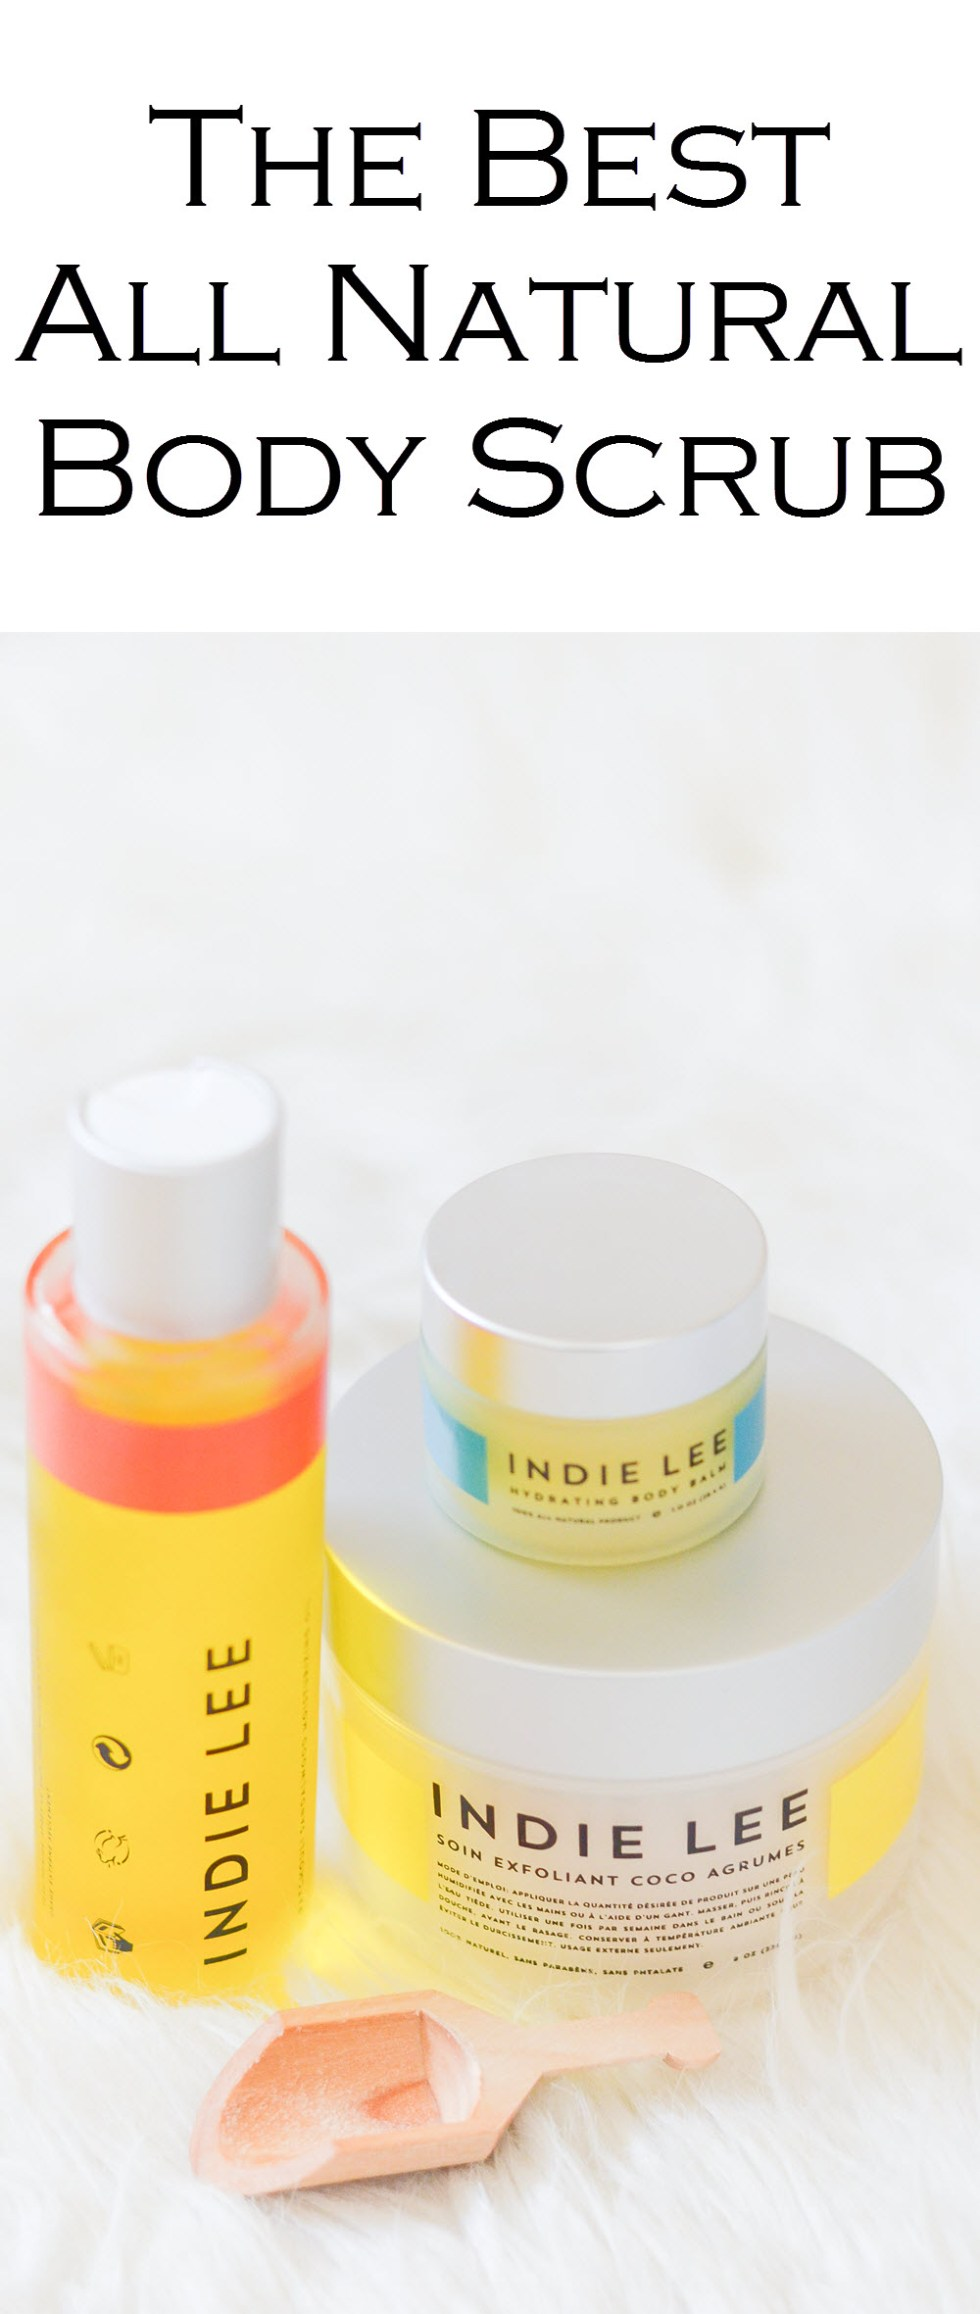 Best All natural Body Scrub. Indie Lee Review. Summer Skin Care Recommendations.